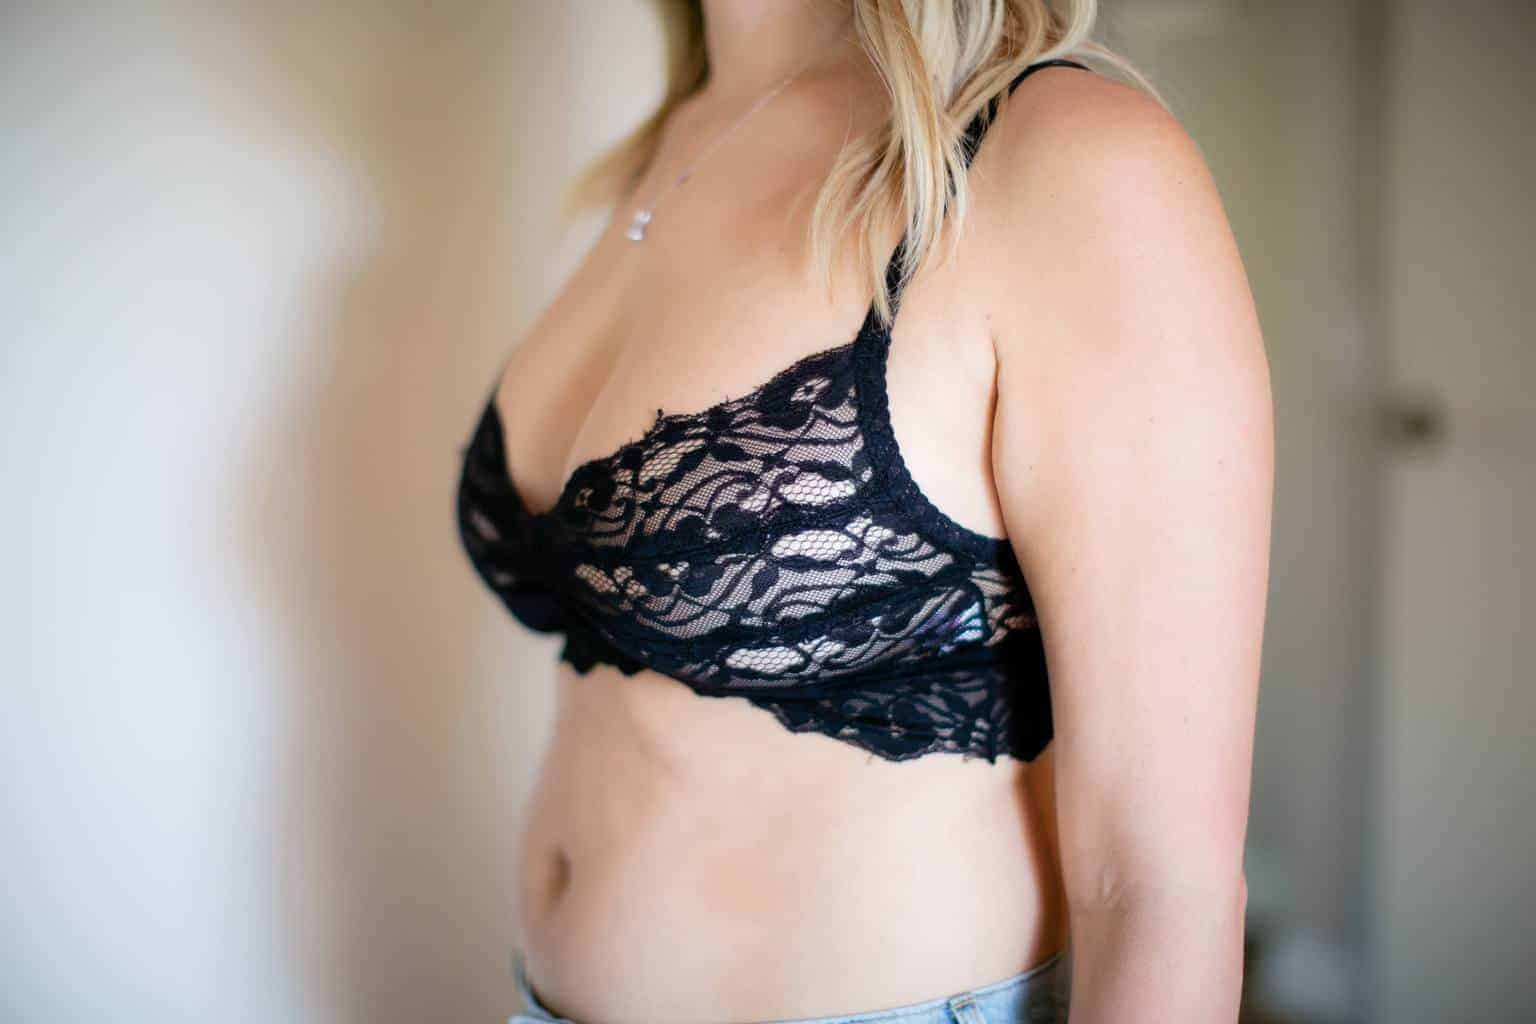 Woman with large boobs wearing a black lace bra